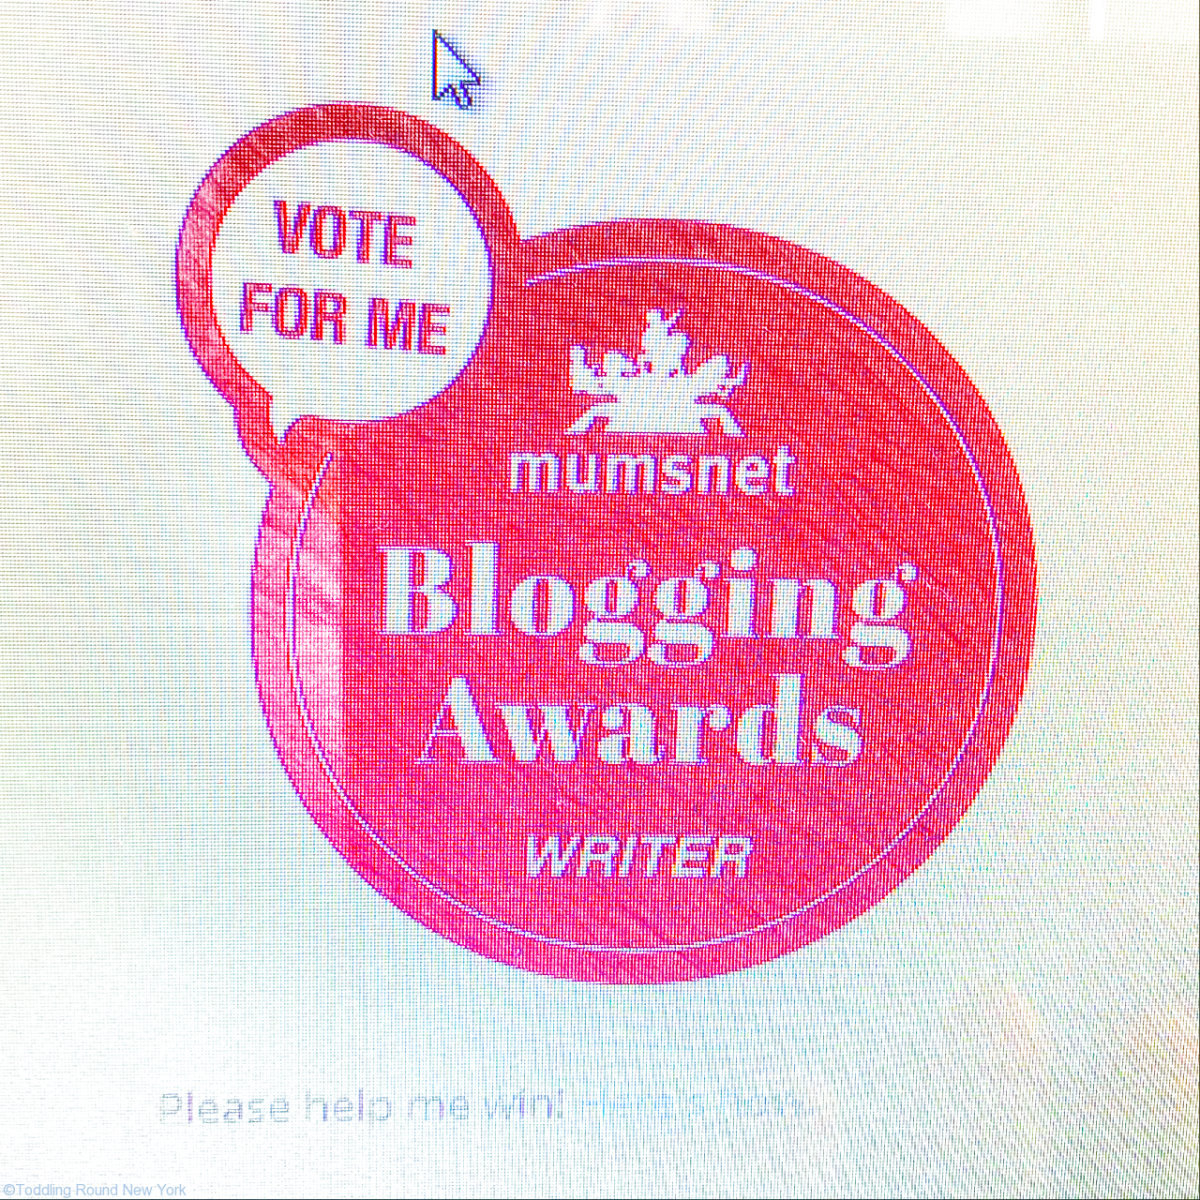 Only a week left to vote! Not the US Elections, the #MNBlogAwards